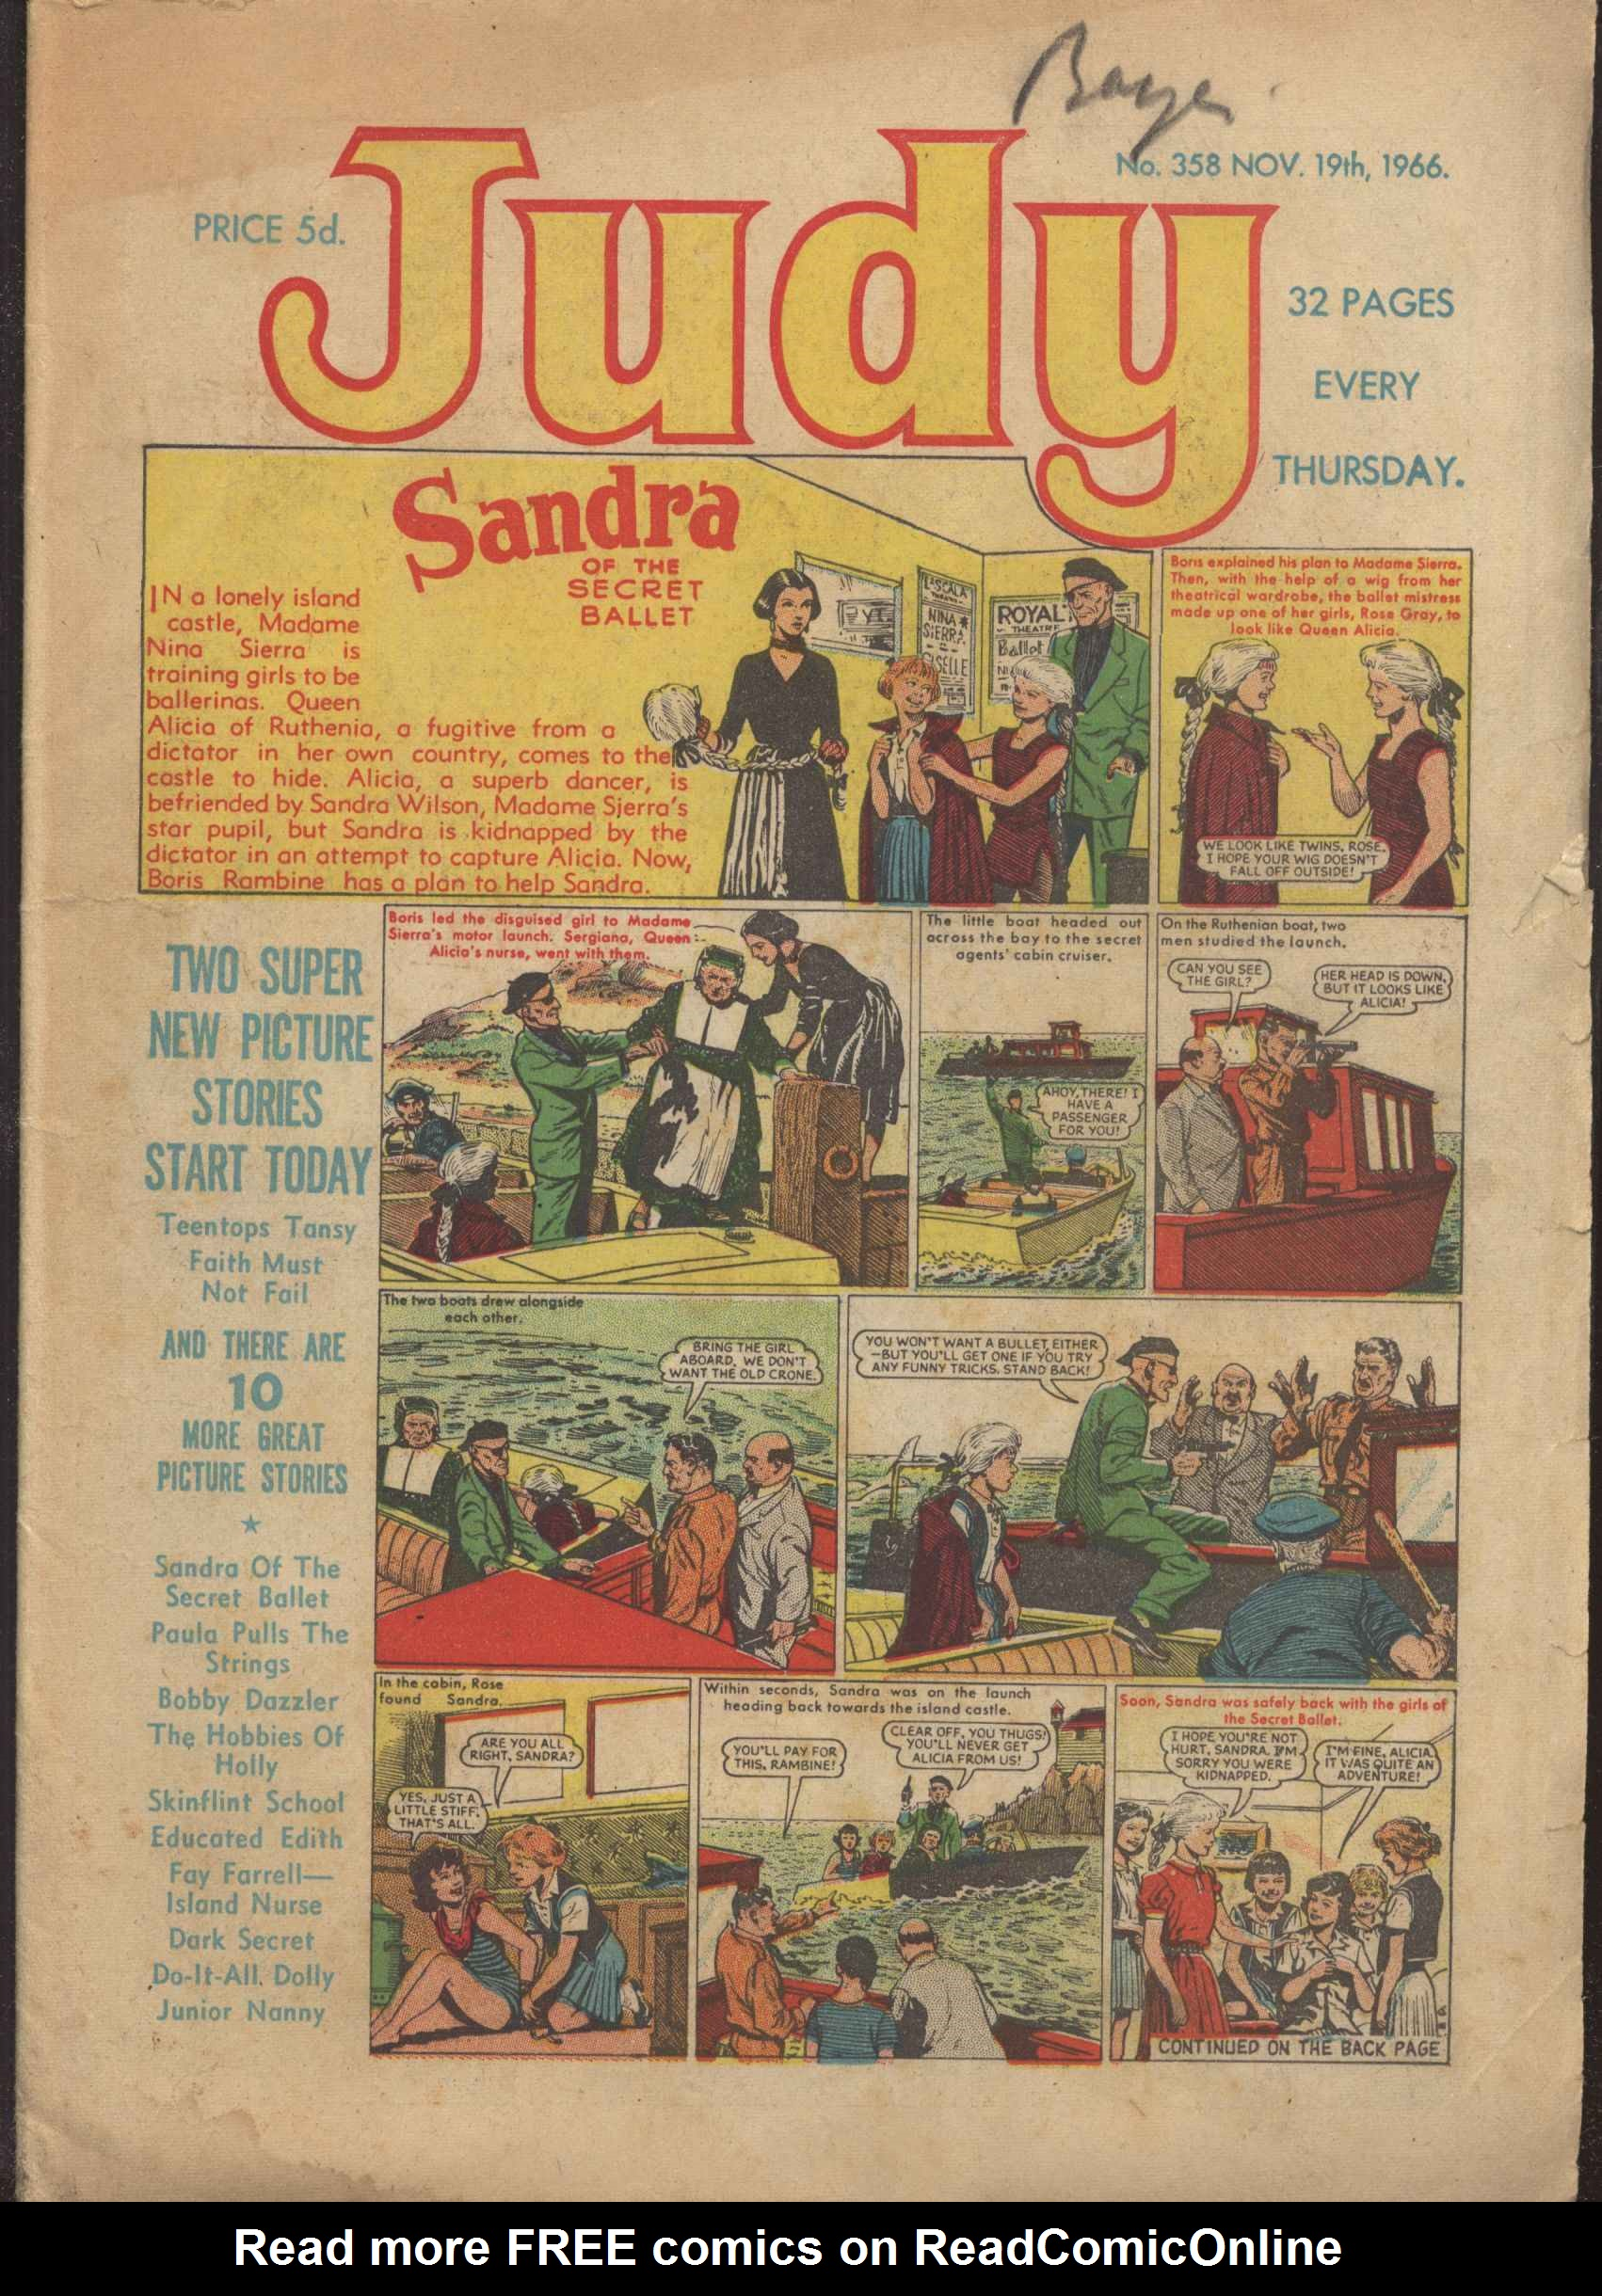 Read online Judy comic -  Issue #358 - 1